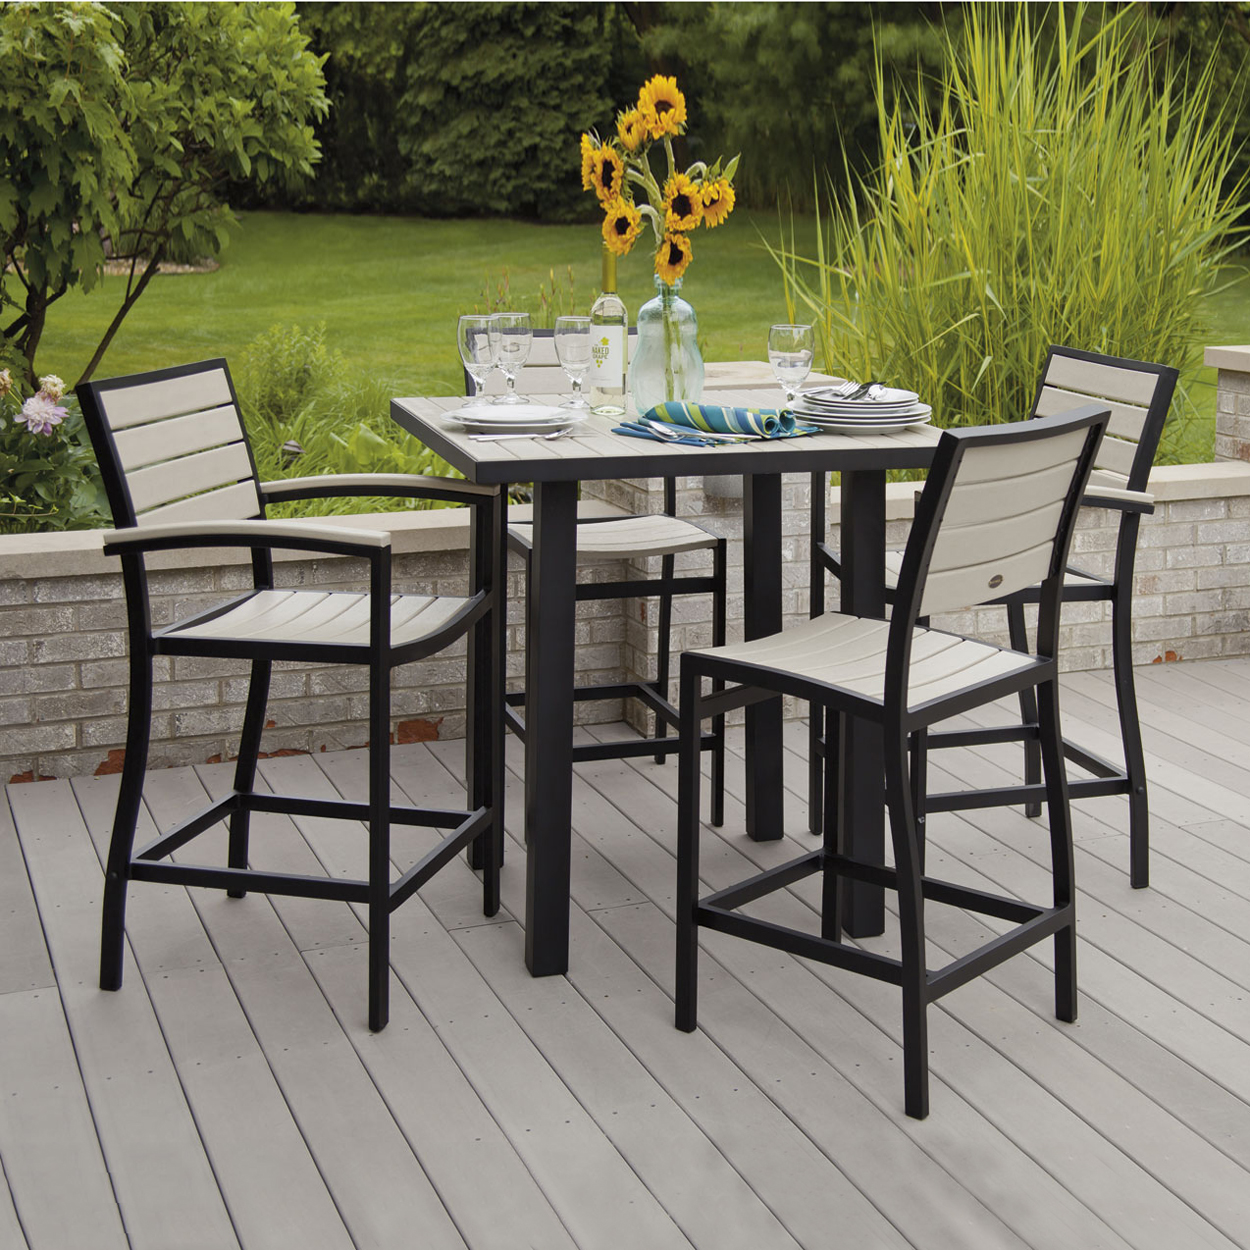 Outdoor Dining Sets Bar Height Photo 1